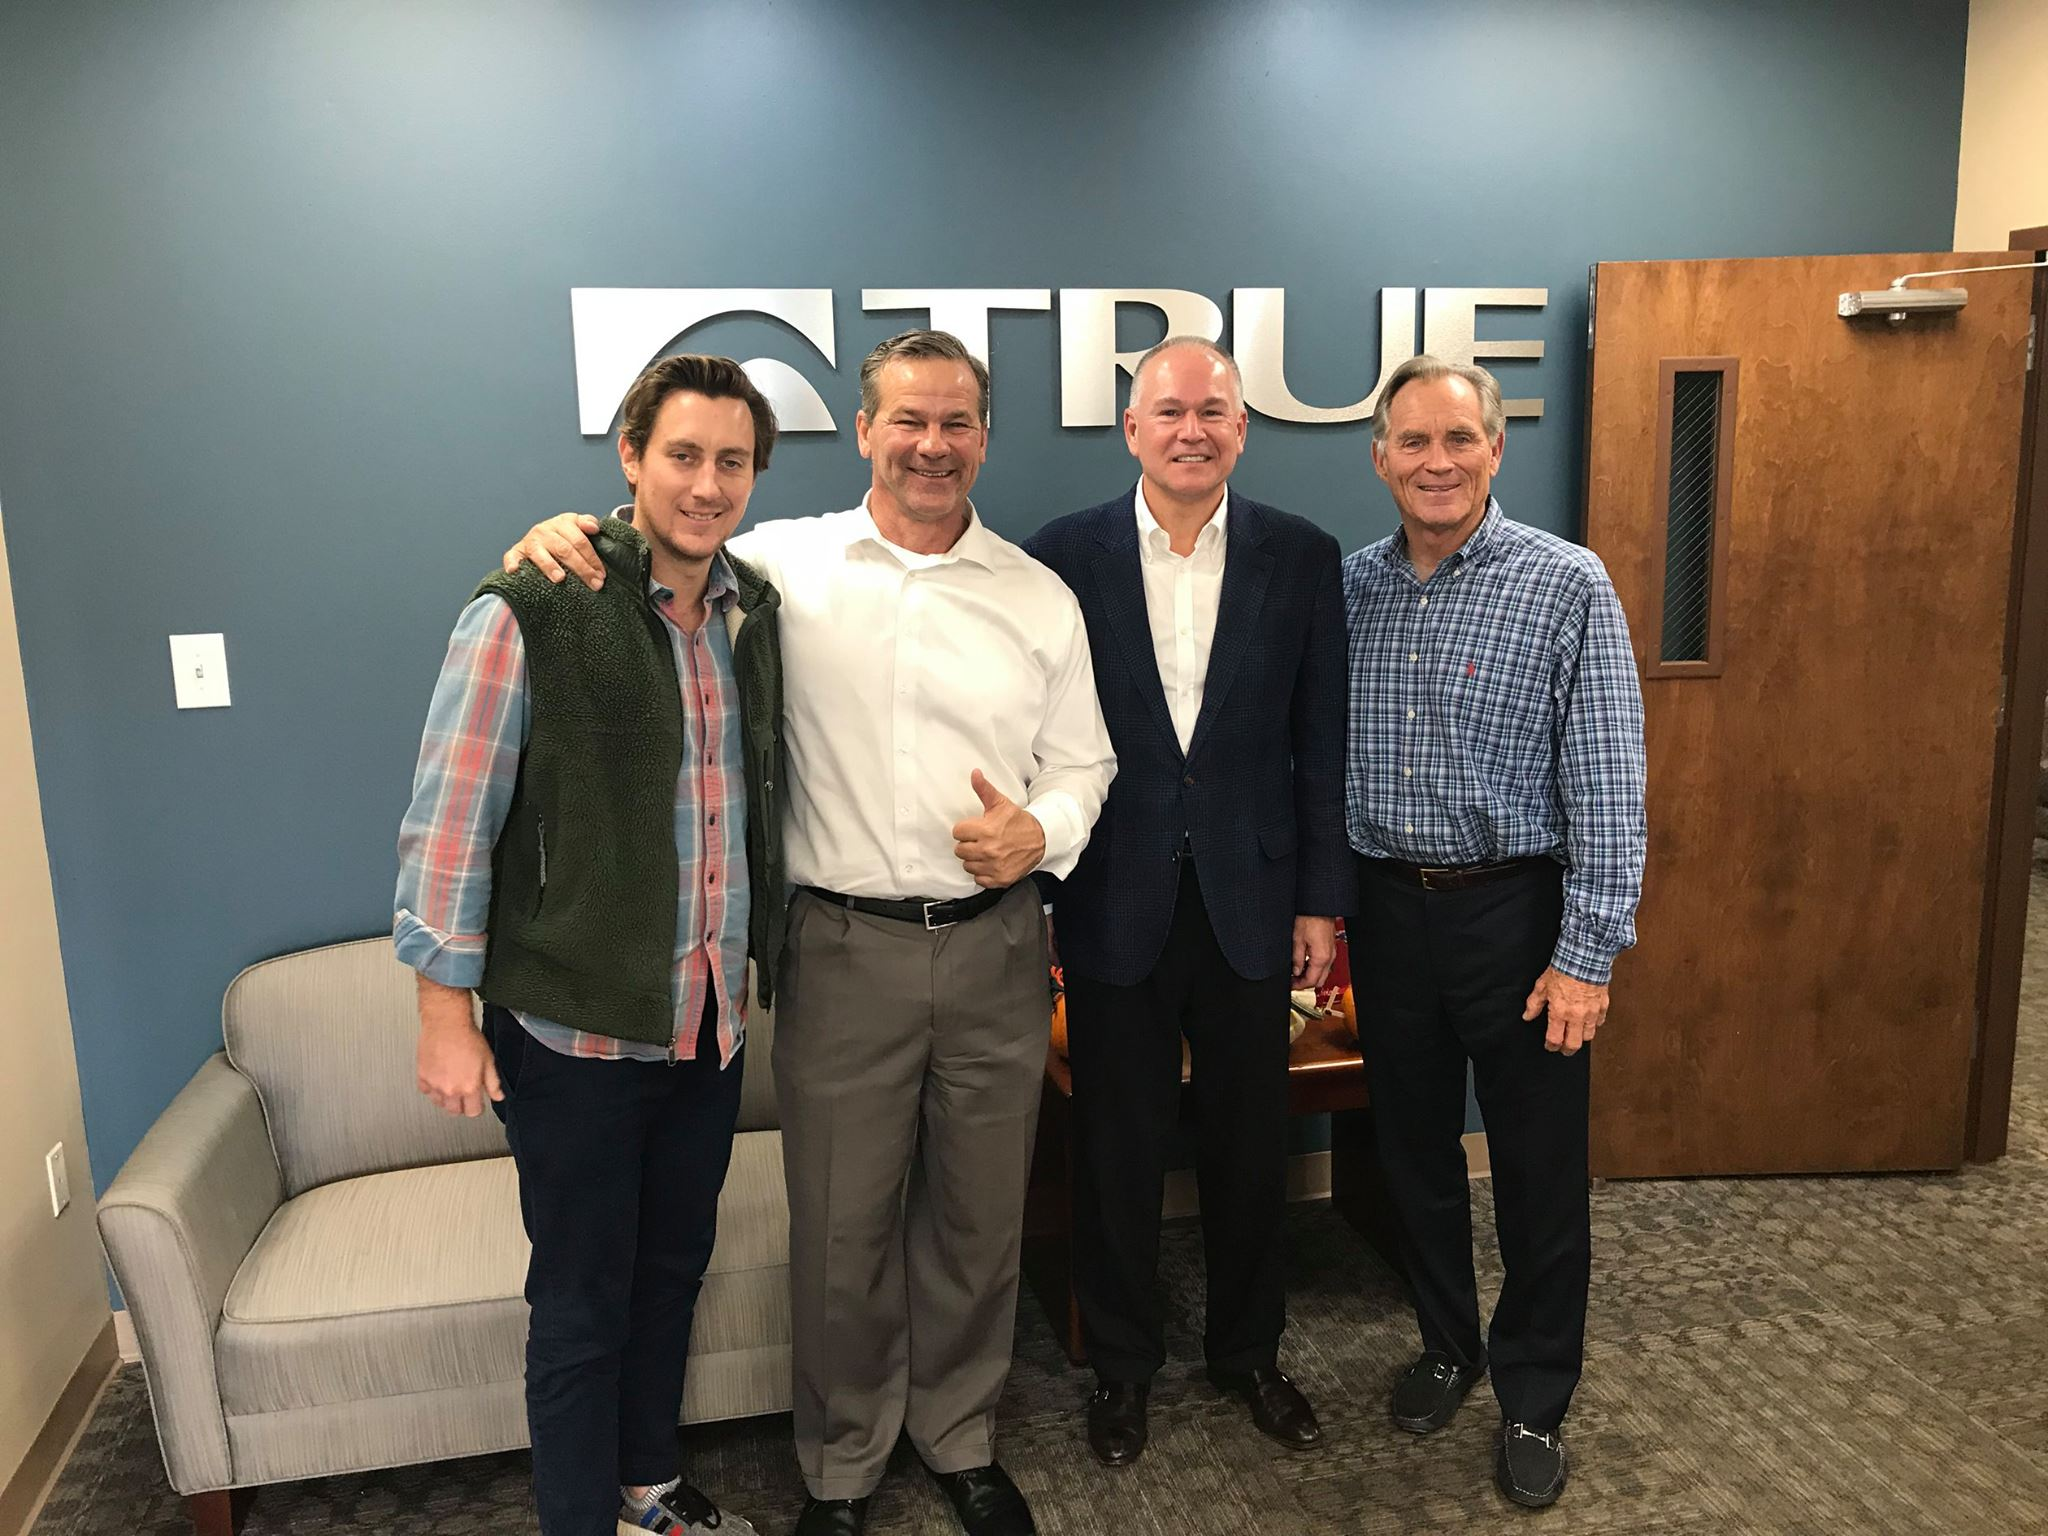 Our founder, Donnie Salum, visited TRUE's facility to get a sneak peak with partner Mark Classen, and TRUE's David and Frank Trulaske.